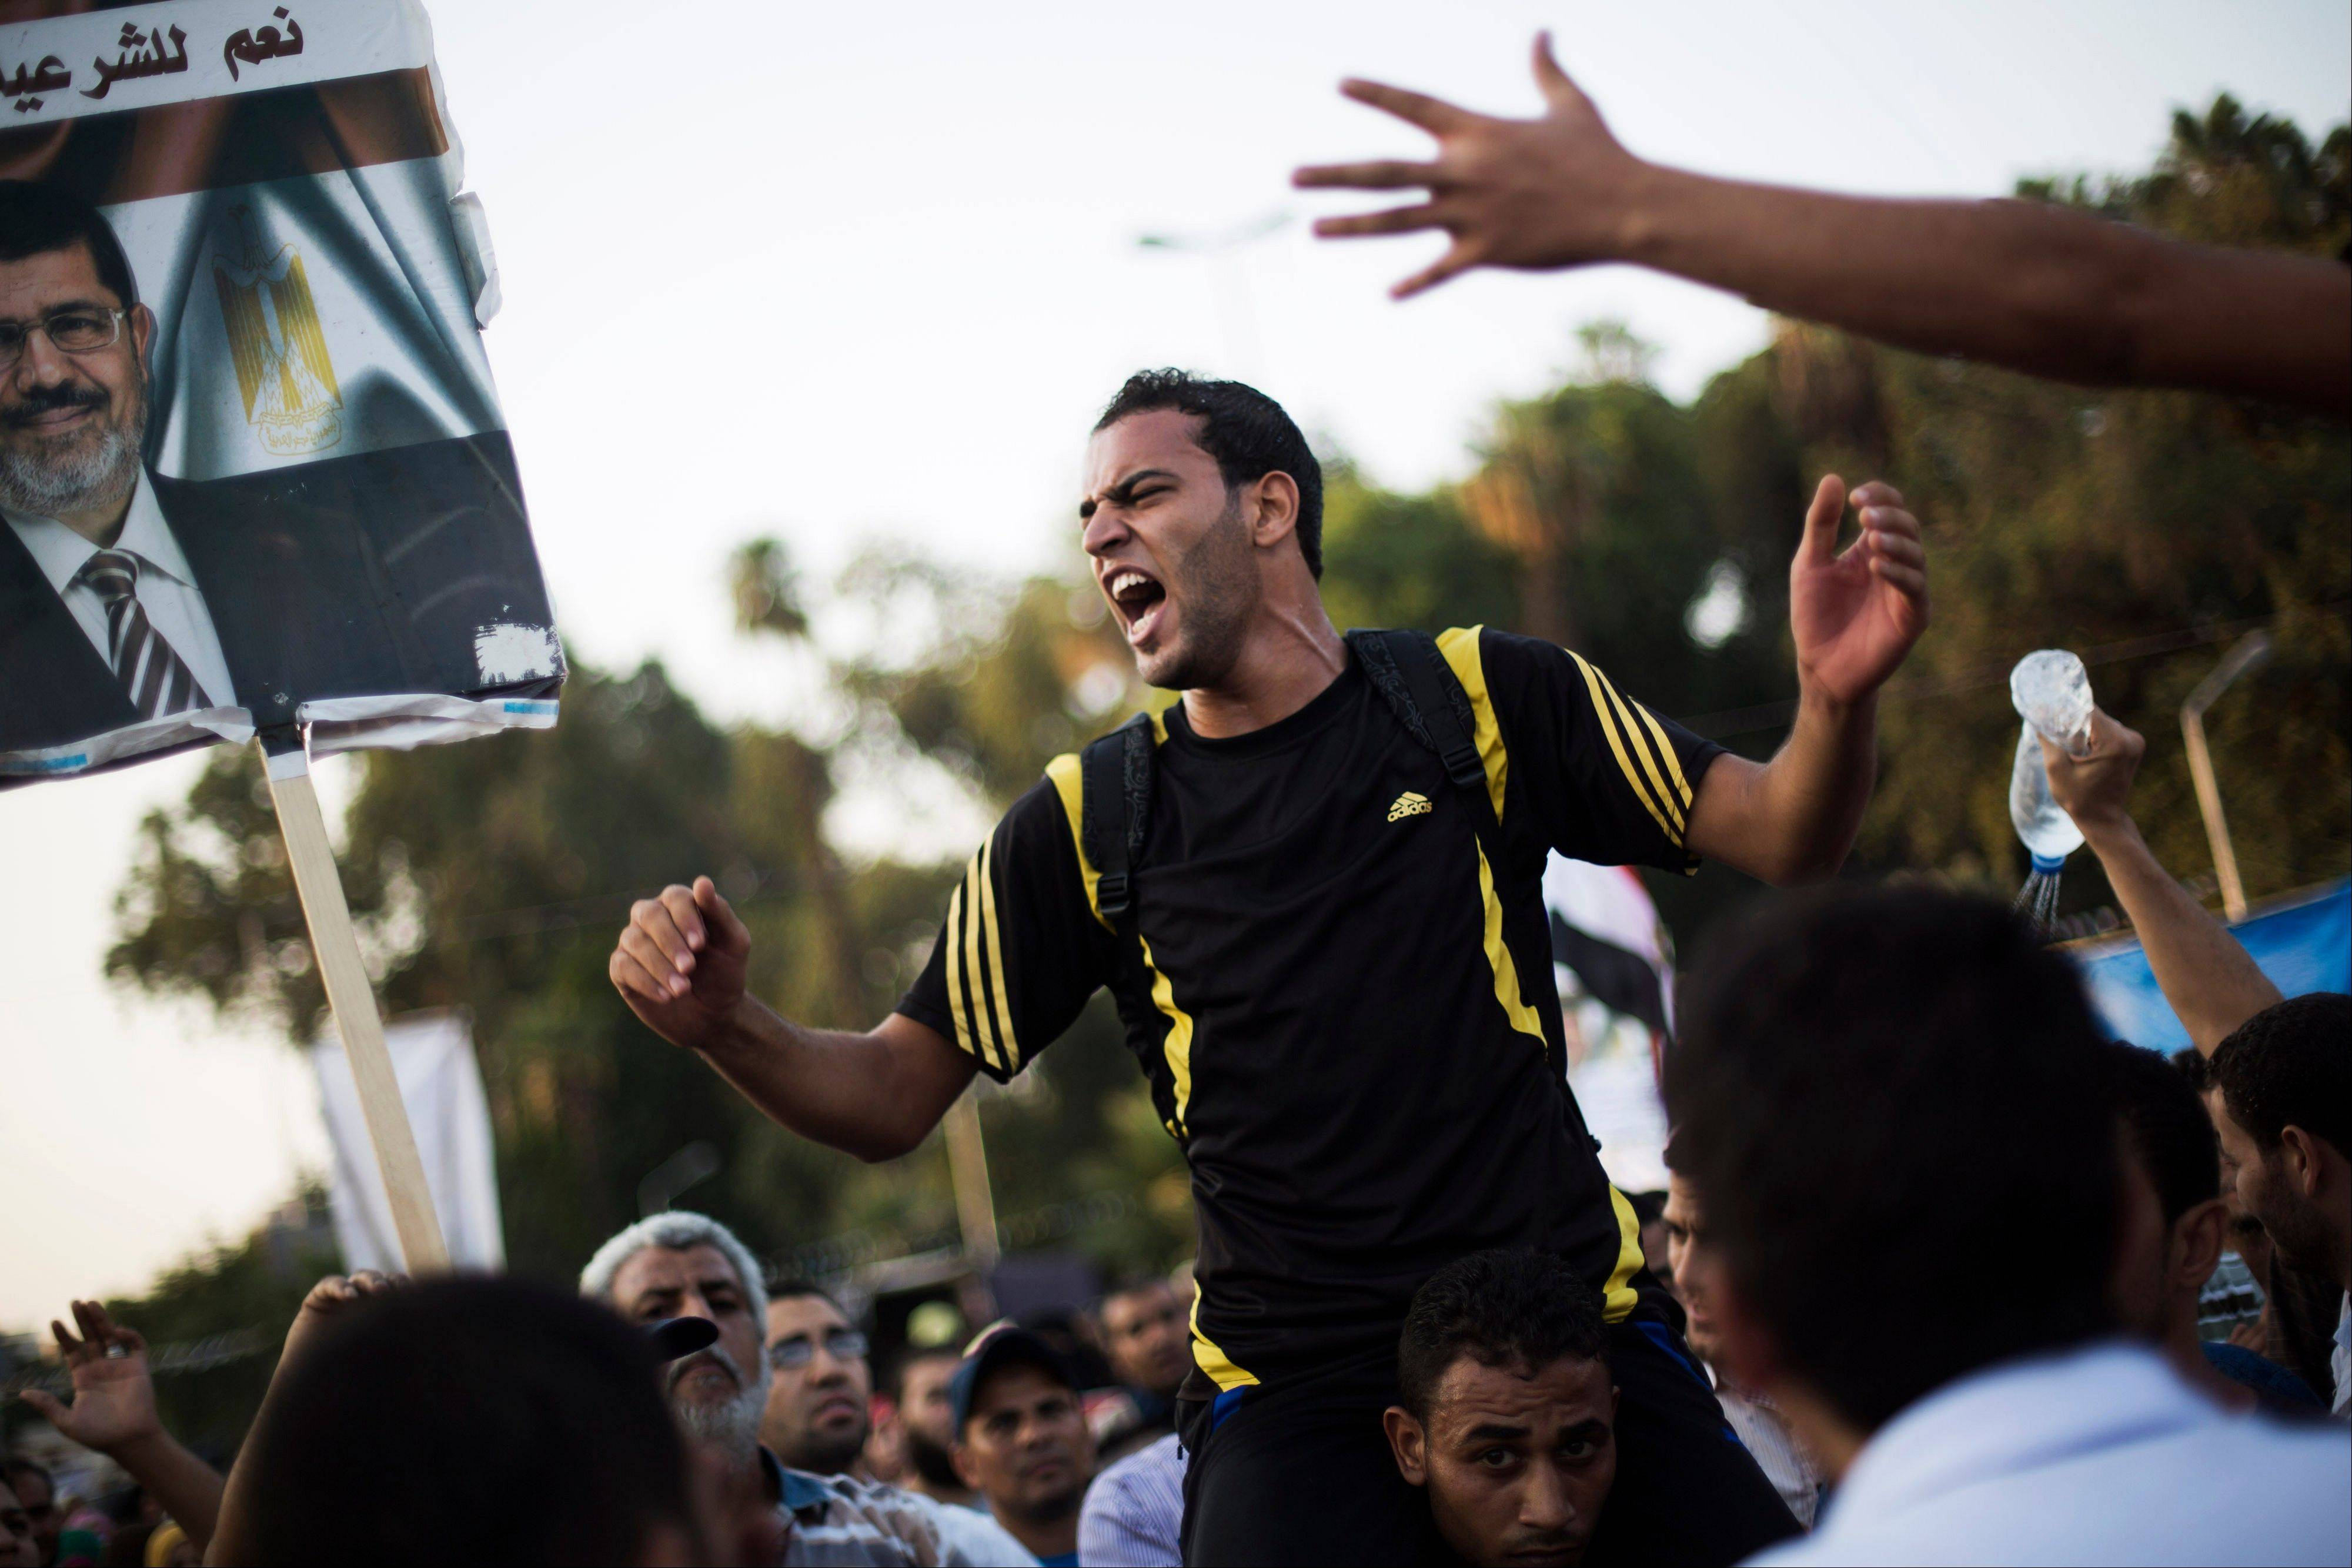 Supporters of Egypt�s ousted President Mohammed Morsi chant slogans supporting the former leader during a protest near Cairo University in Giza, Egypt, Sunday.